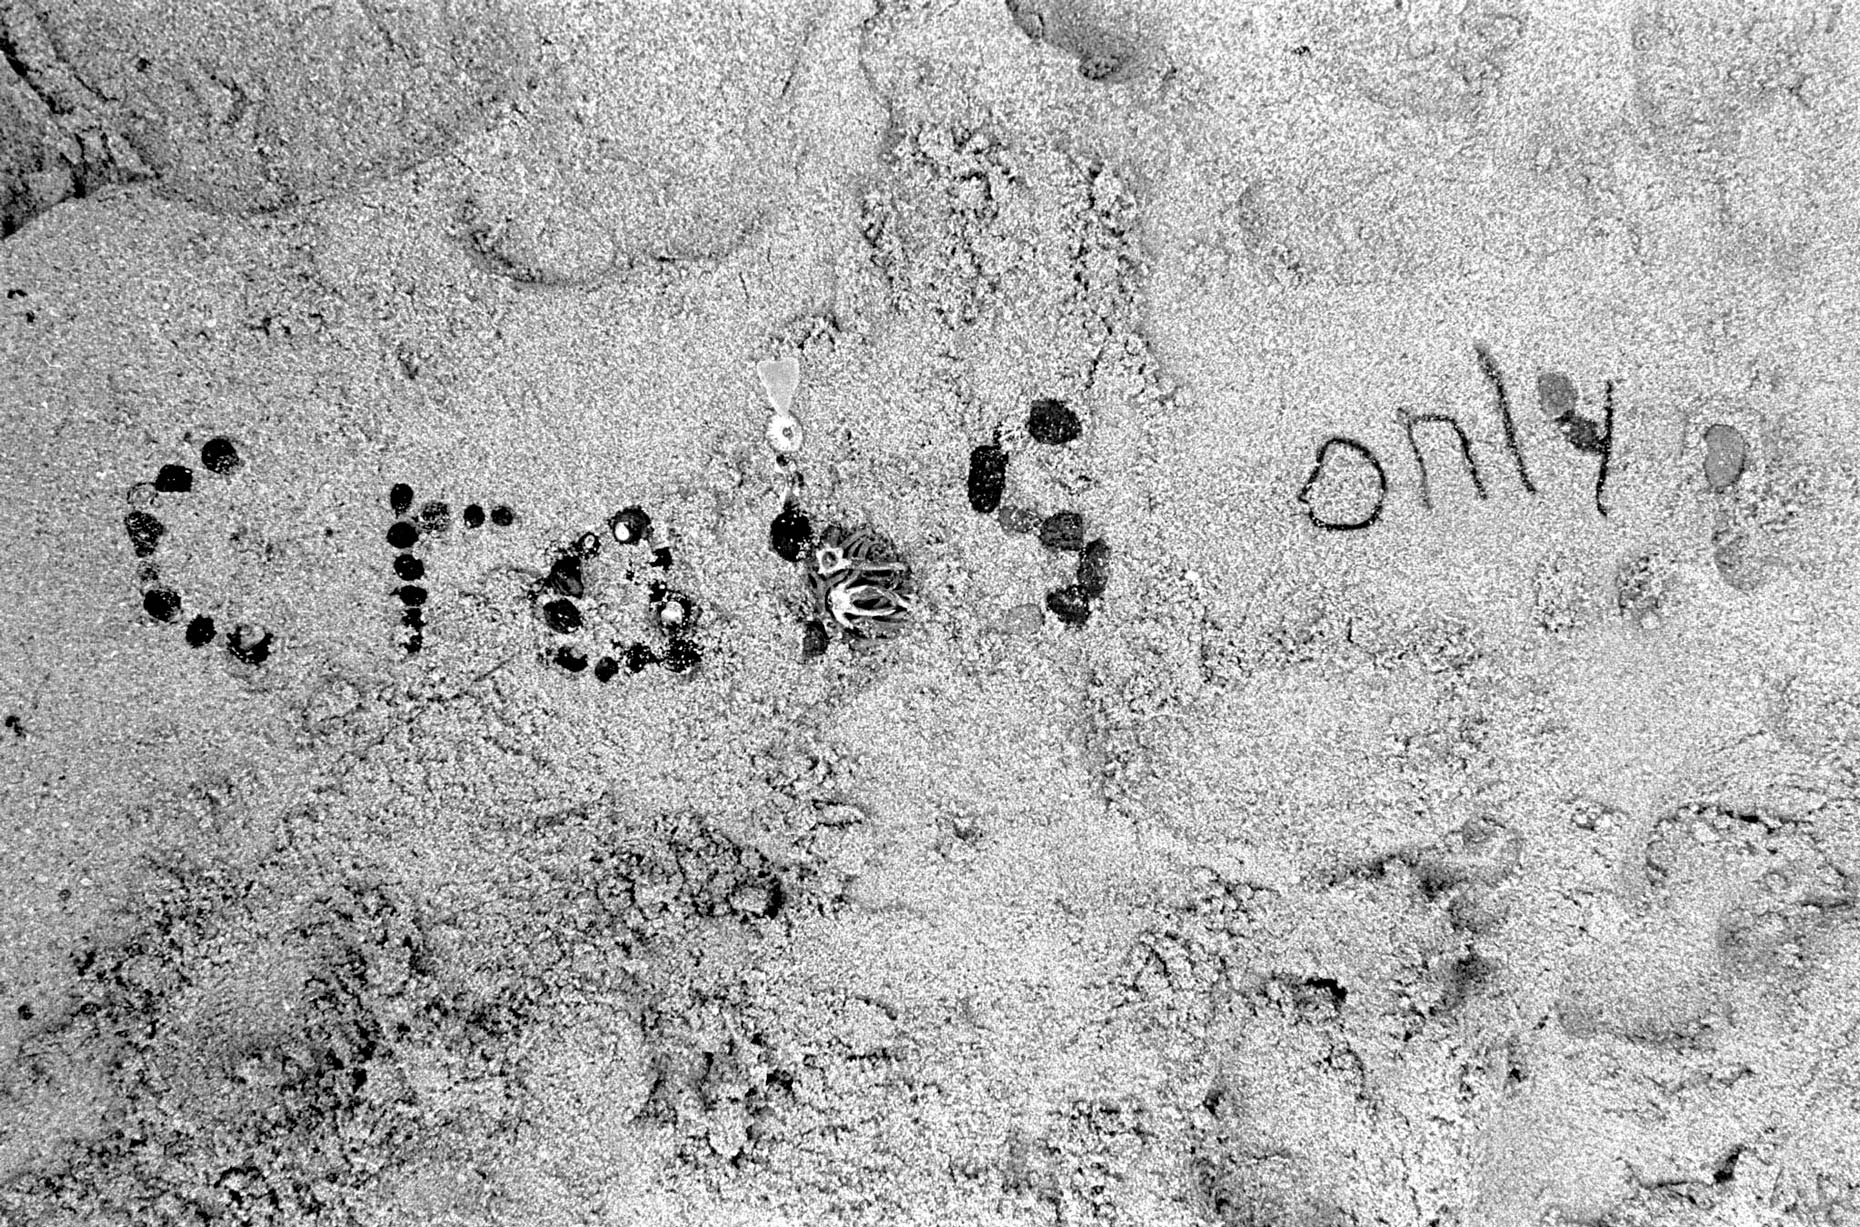 Visible,-Now-writing-in-sand-41